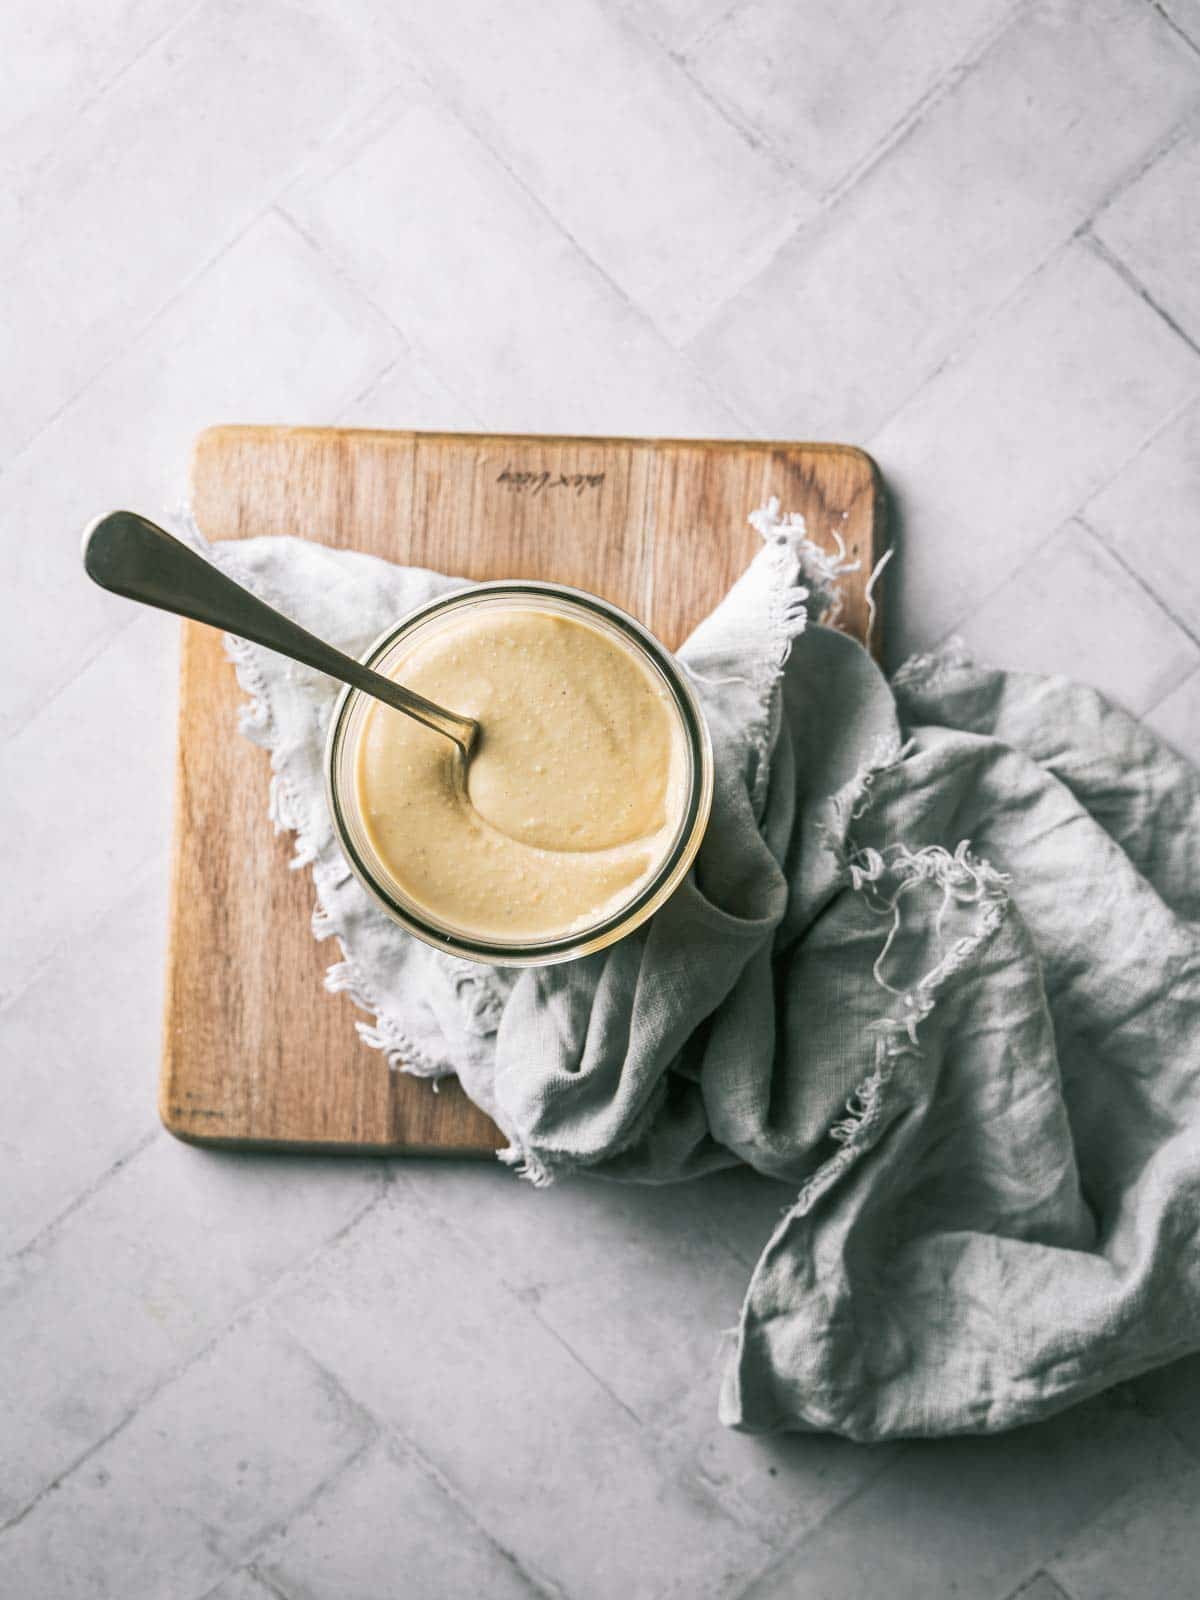 A jar of nut butter on a wooden board with a spoon.